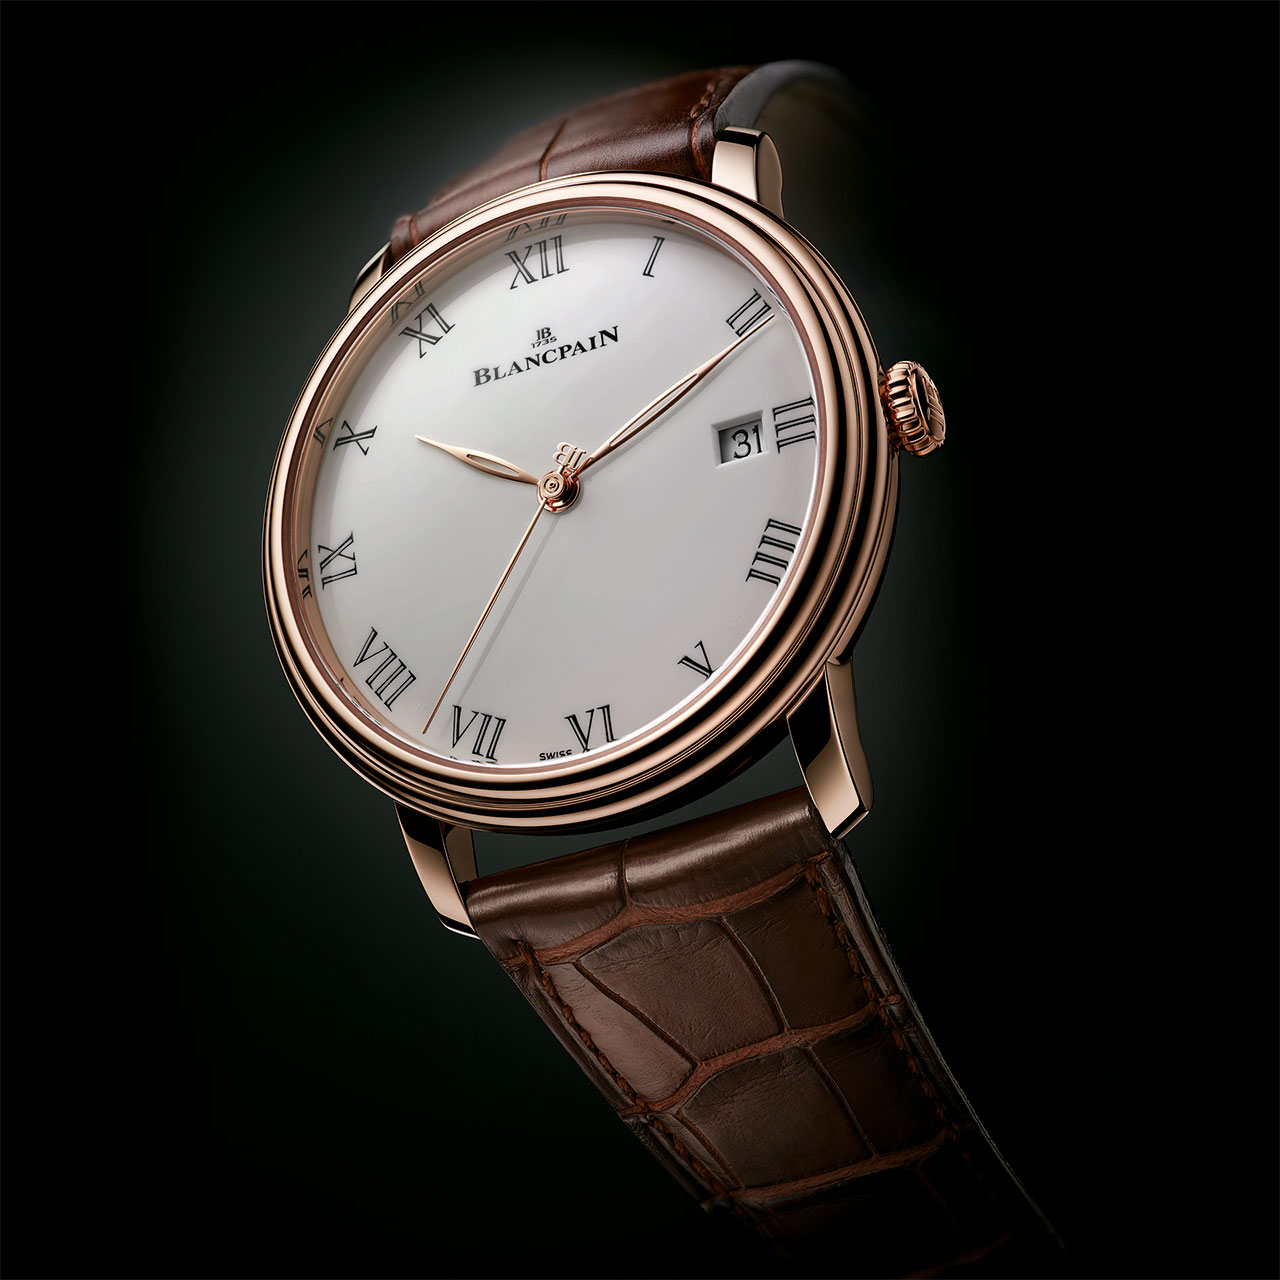 Blancpain Villeret Collection, 8 jours Watch